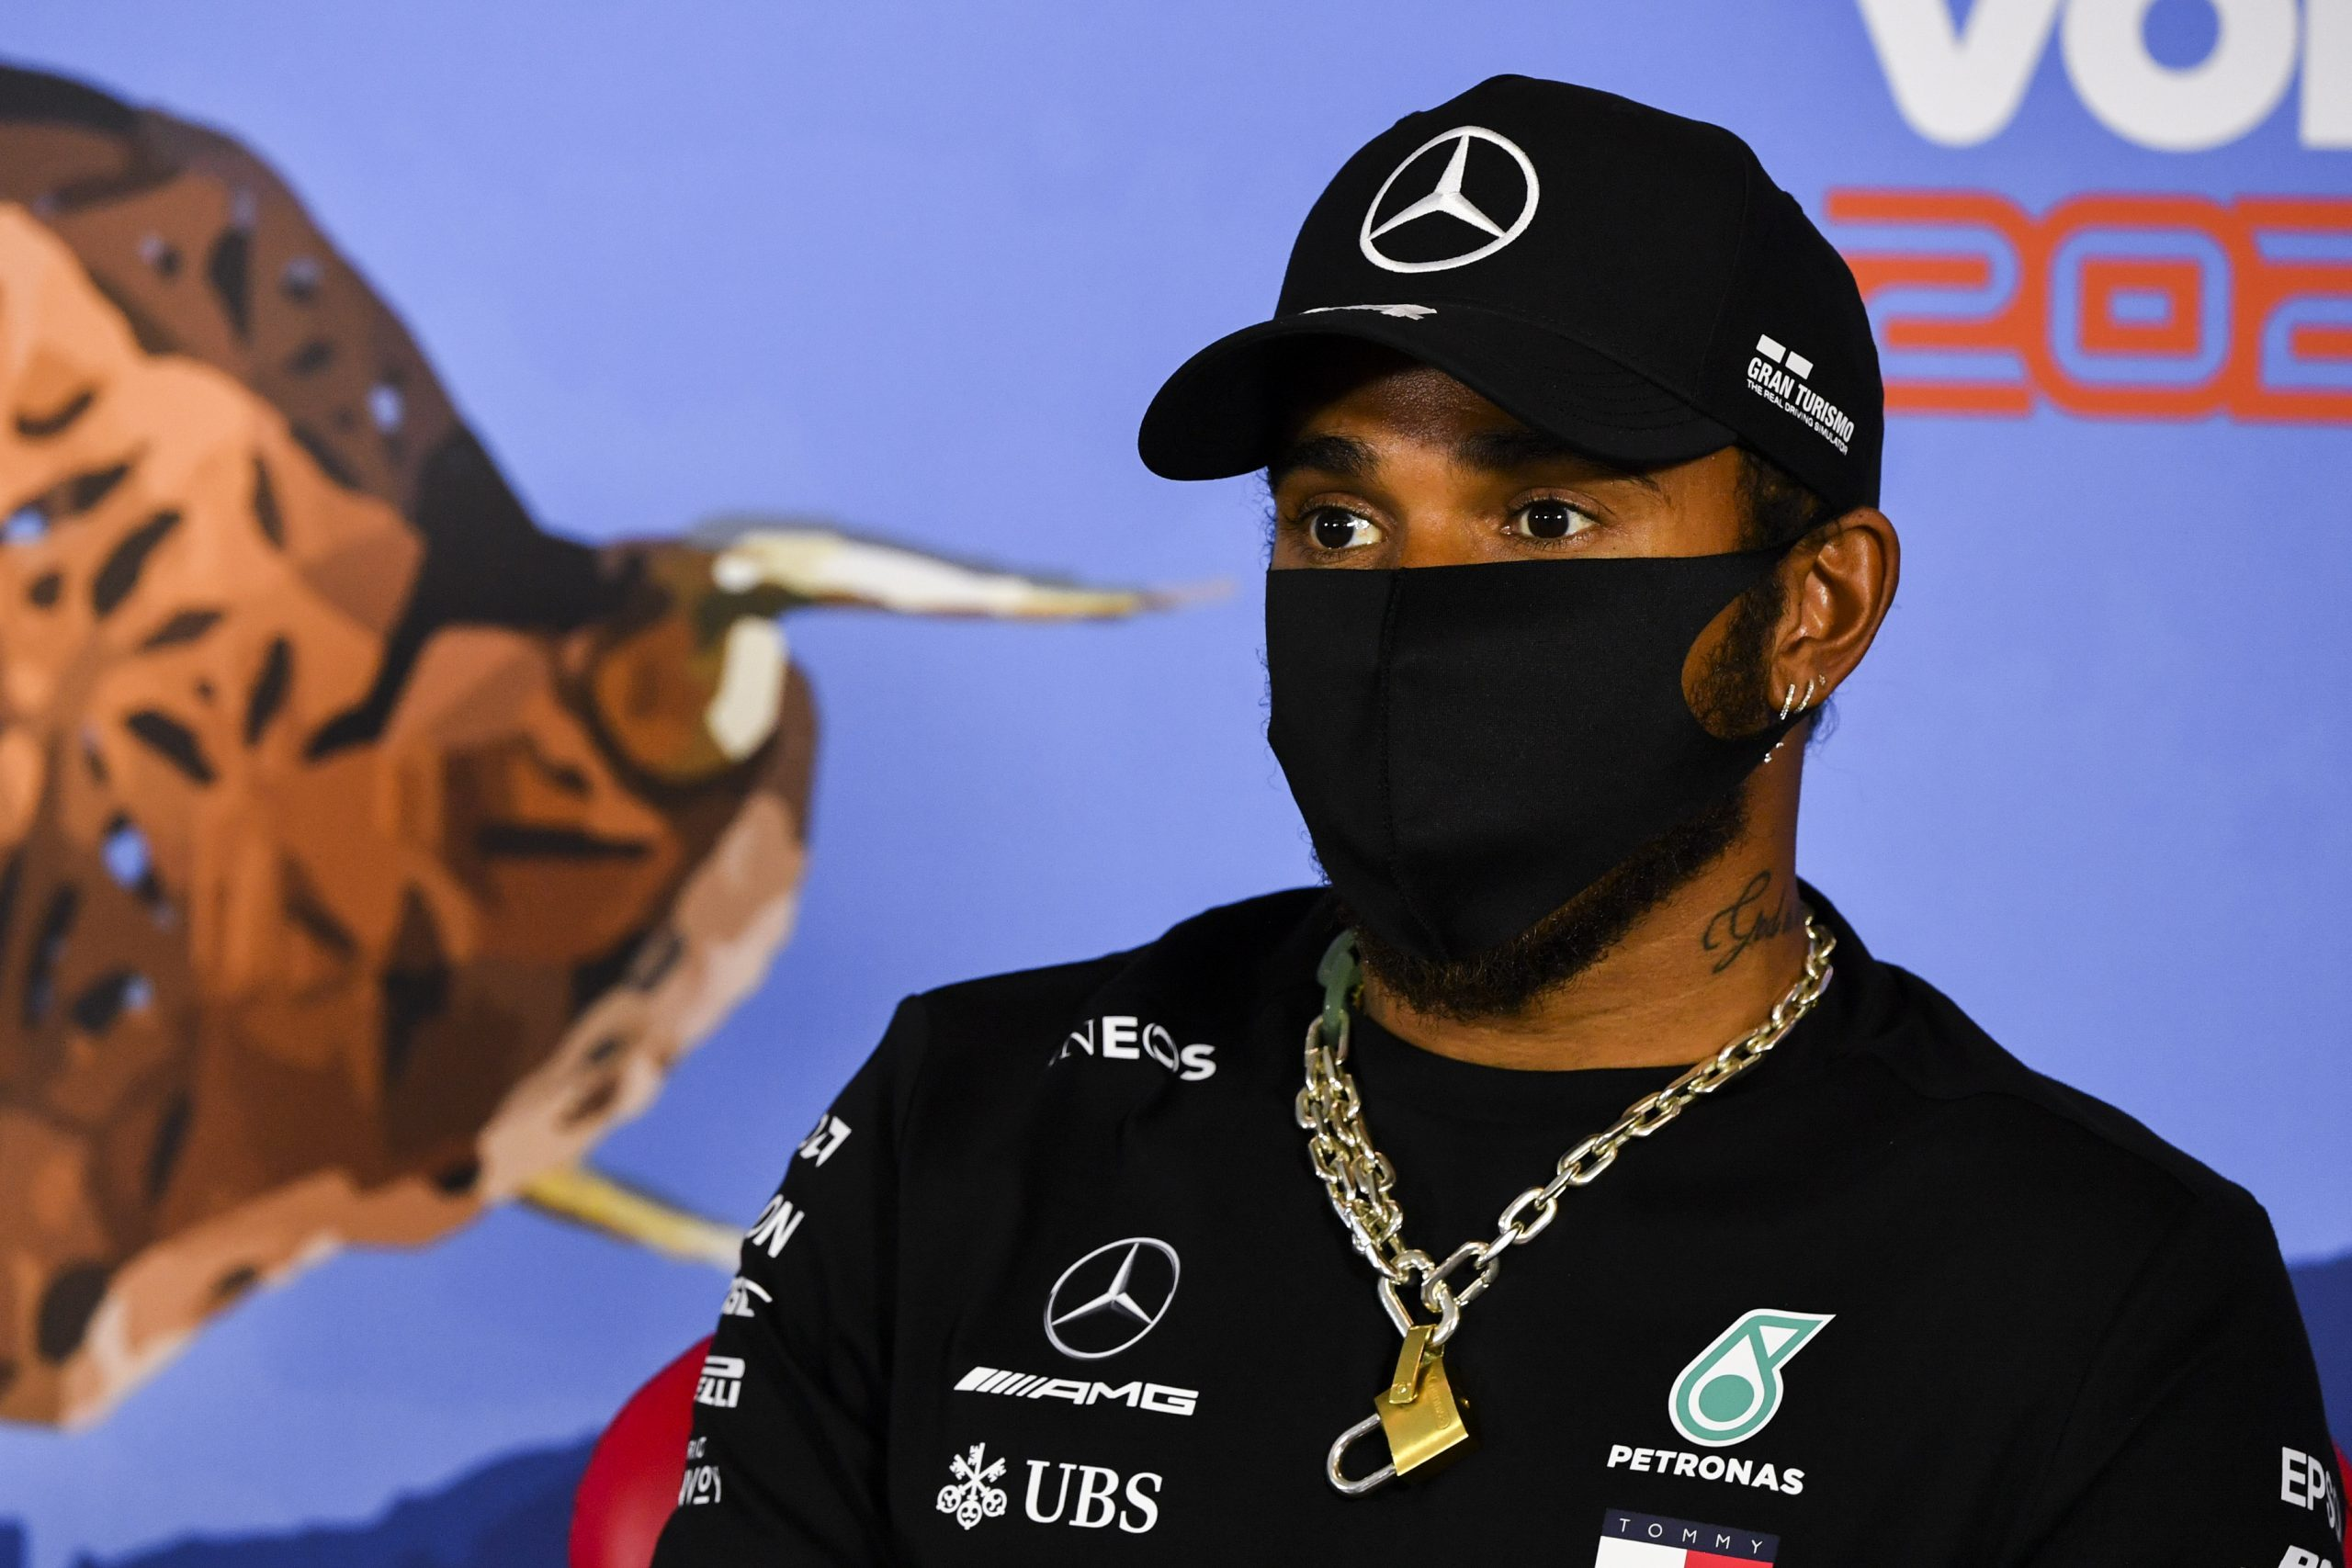 Lewis Hamilton forced to change his stand